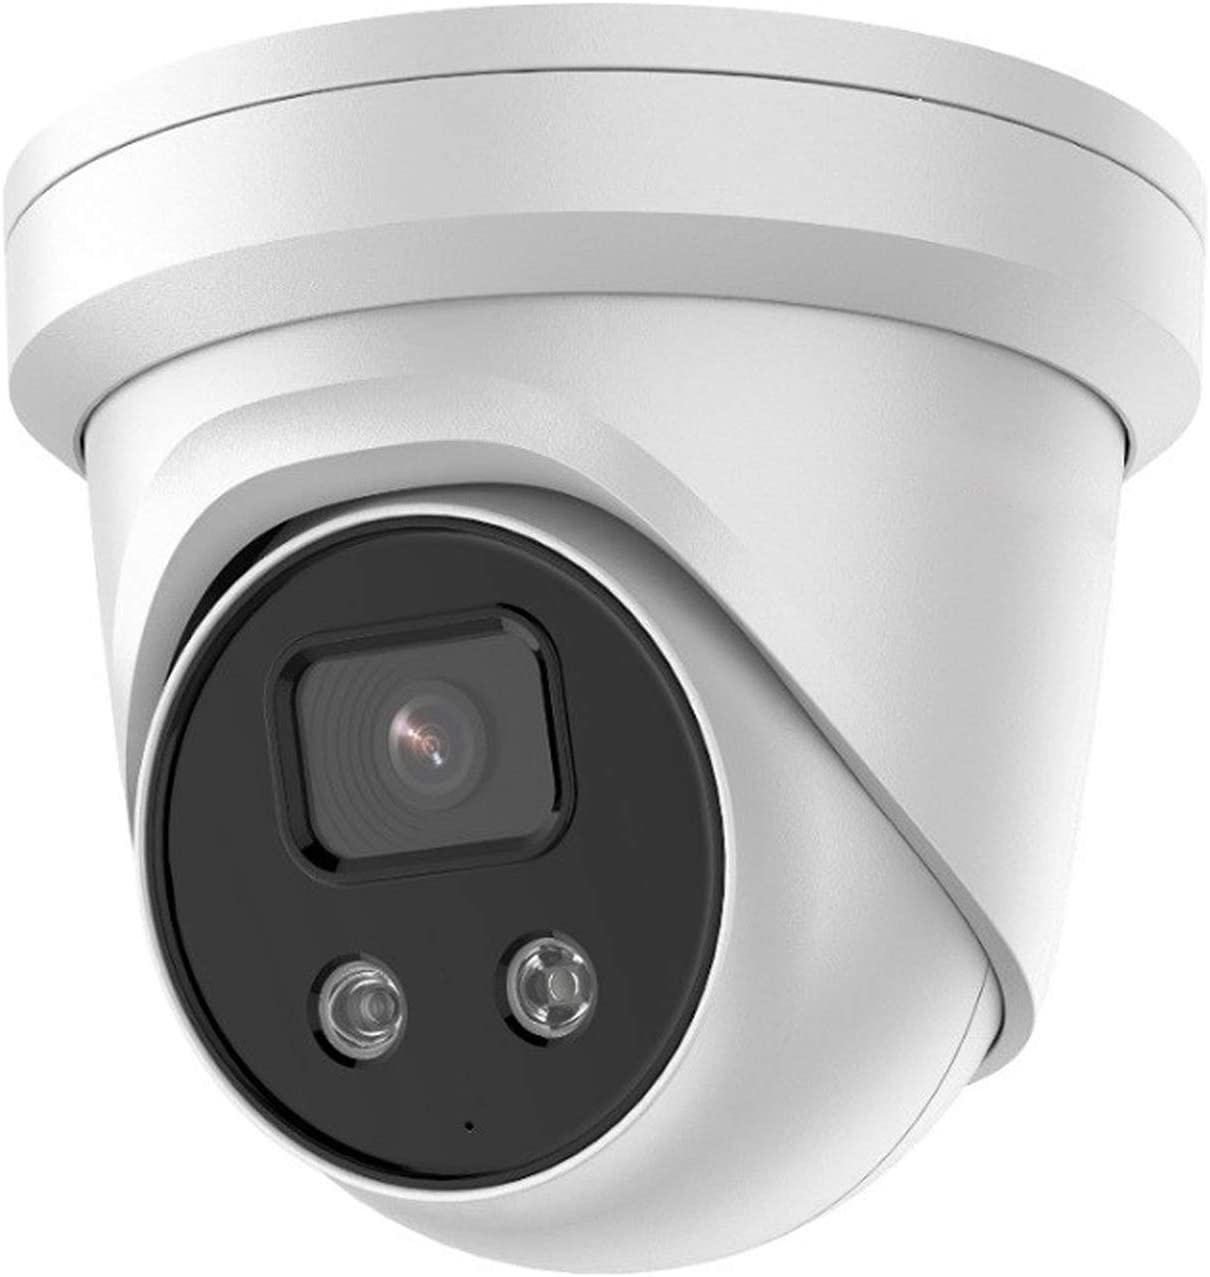 8MP Outdoor PoE IP Camera - UltraHD 4K AcuSense Darkfighter Outdoor Dome Camera with 98ft Night Version,Bulit-in Micphone,Smart H265+,IP67,Smart Human and Vehicle Detection (HS-VST08G2-IU 2.8mm)